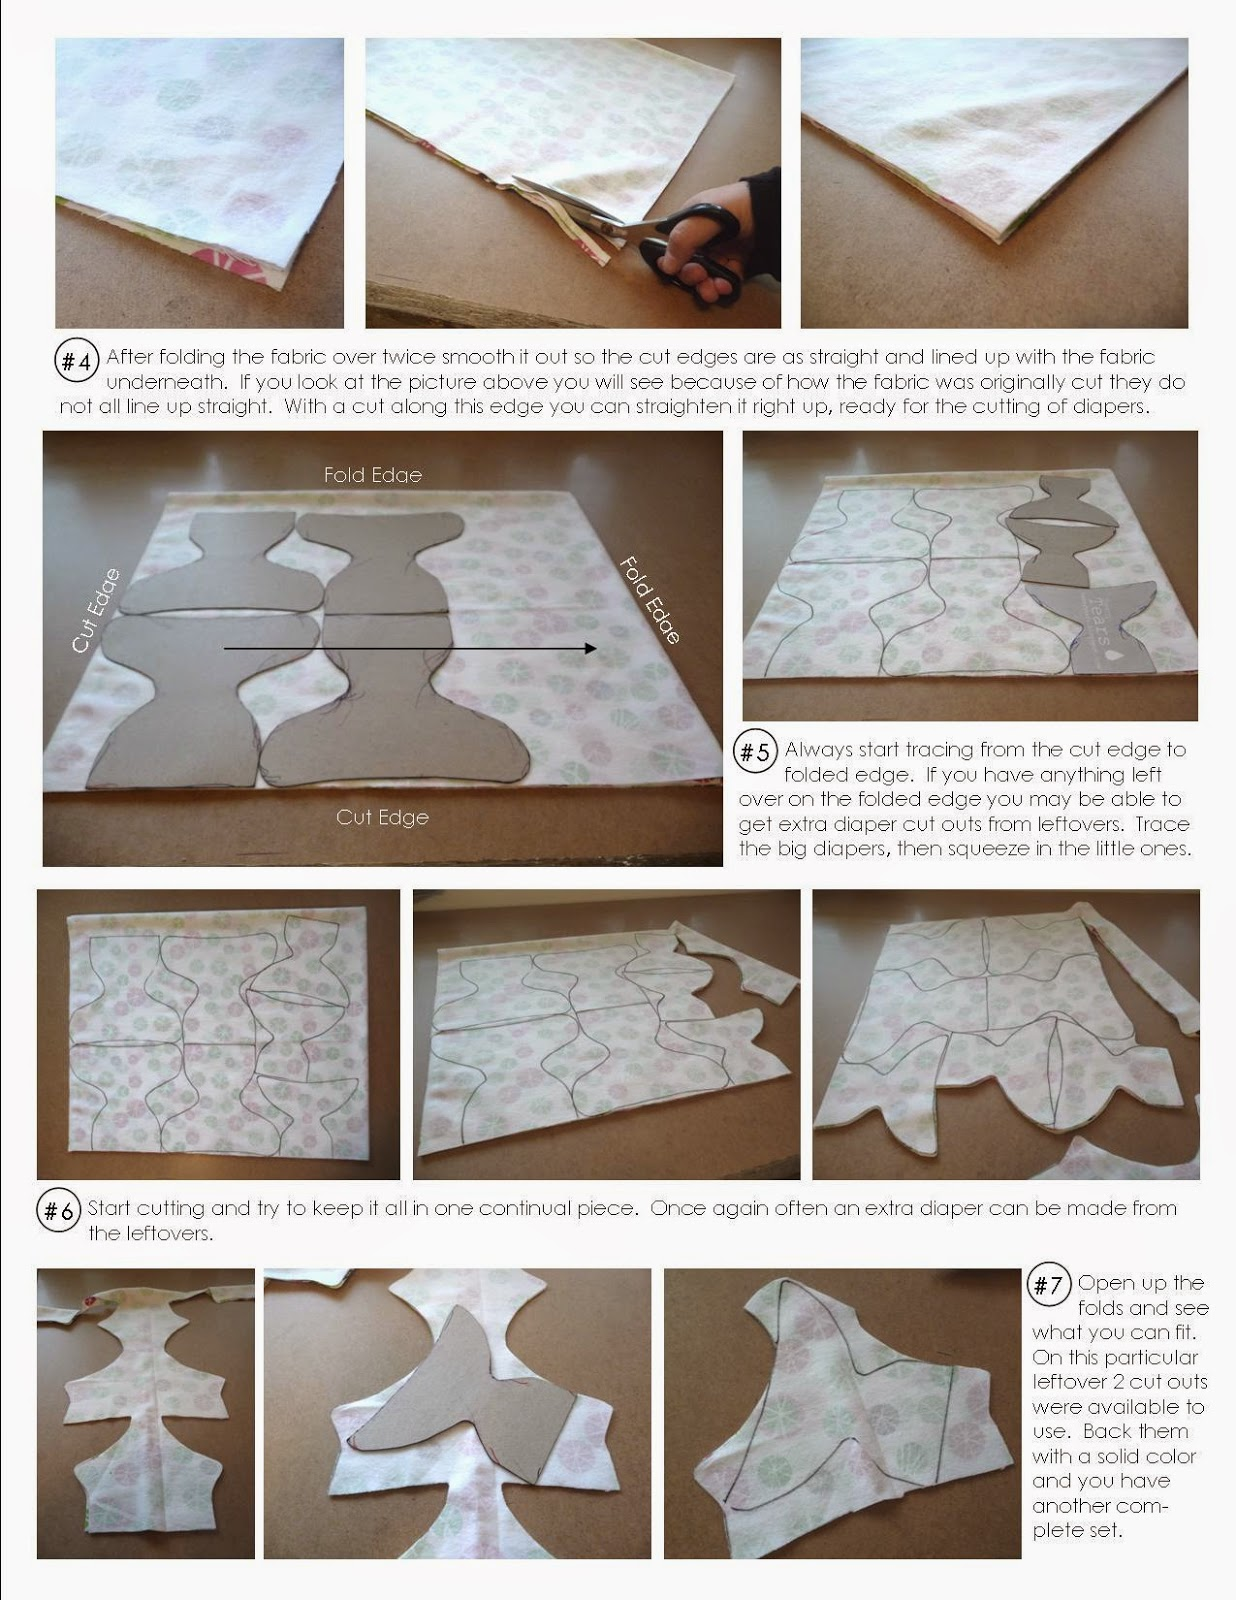 how to cut photo sheet in to multipe photos